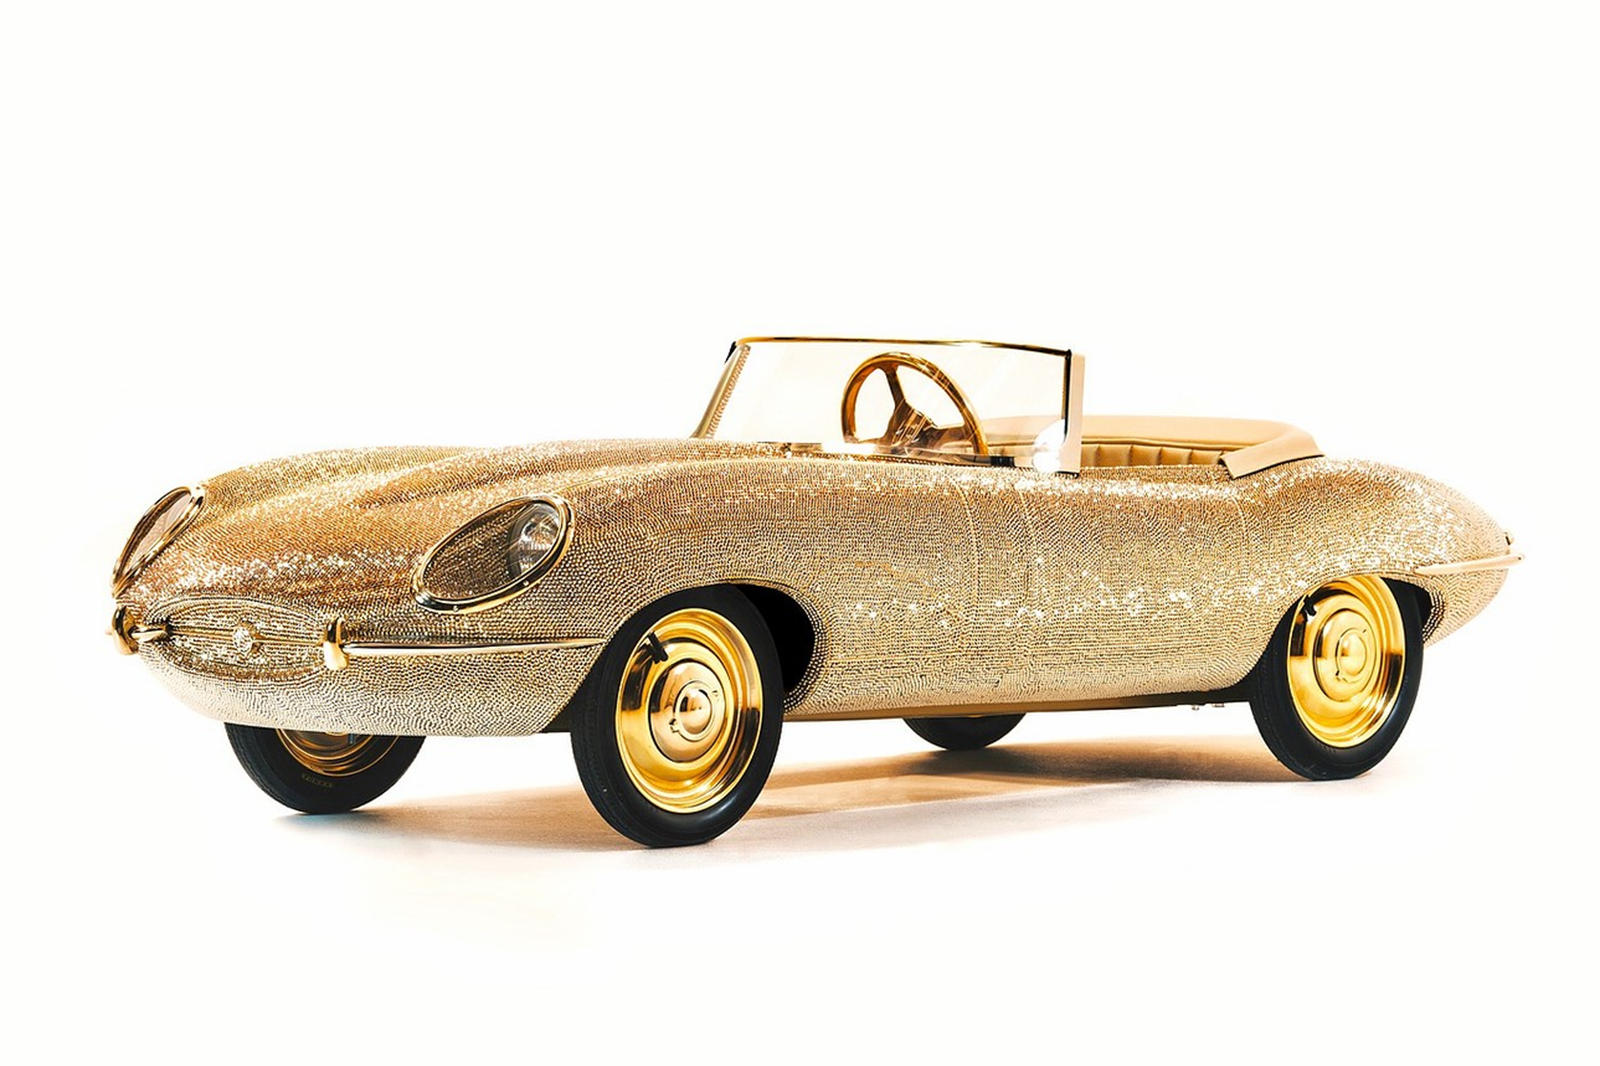 This Exquisite Jaguar E-Type Toy Car Has Over 100,000 Crystals